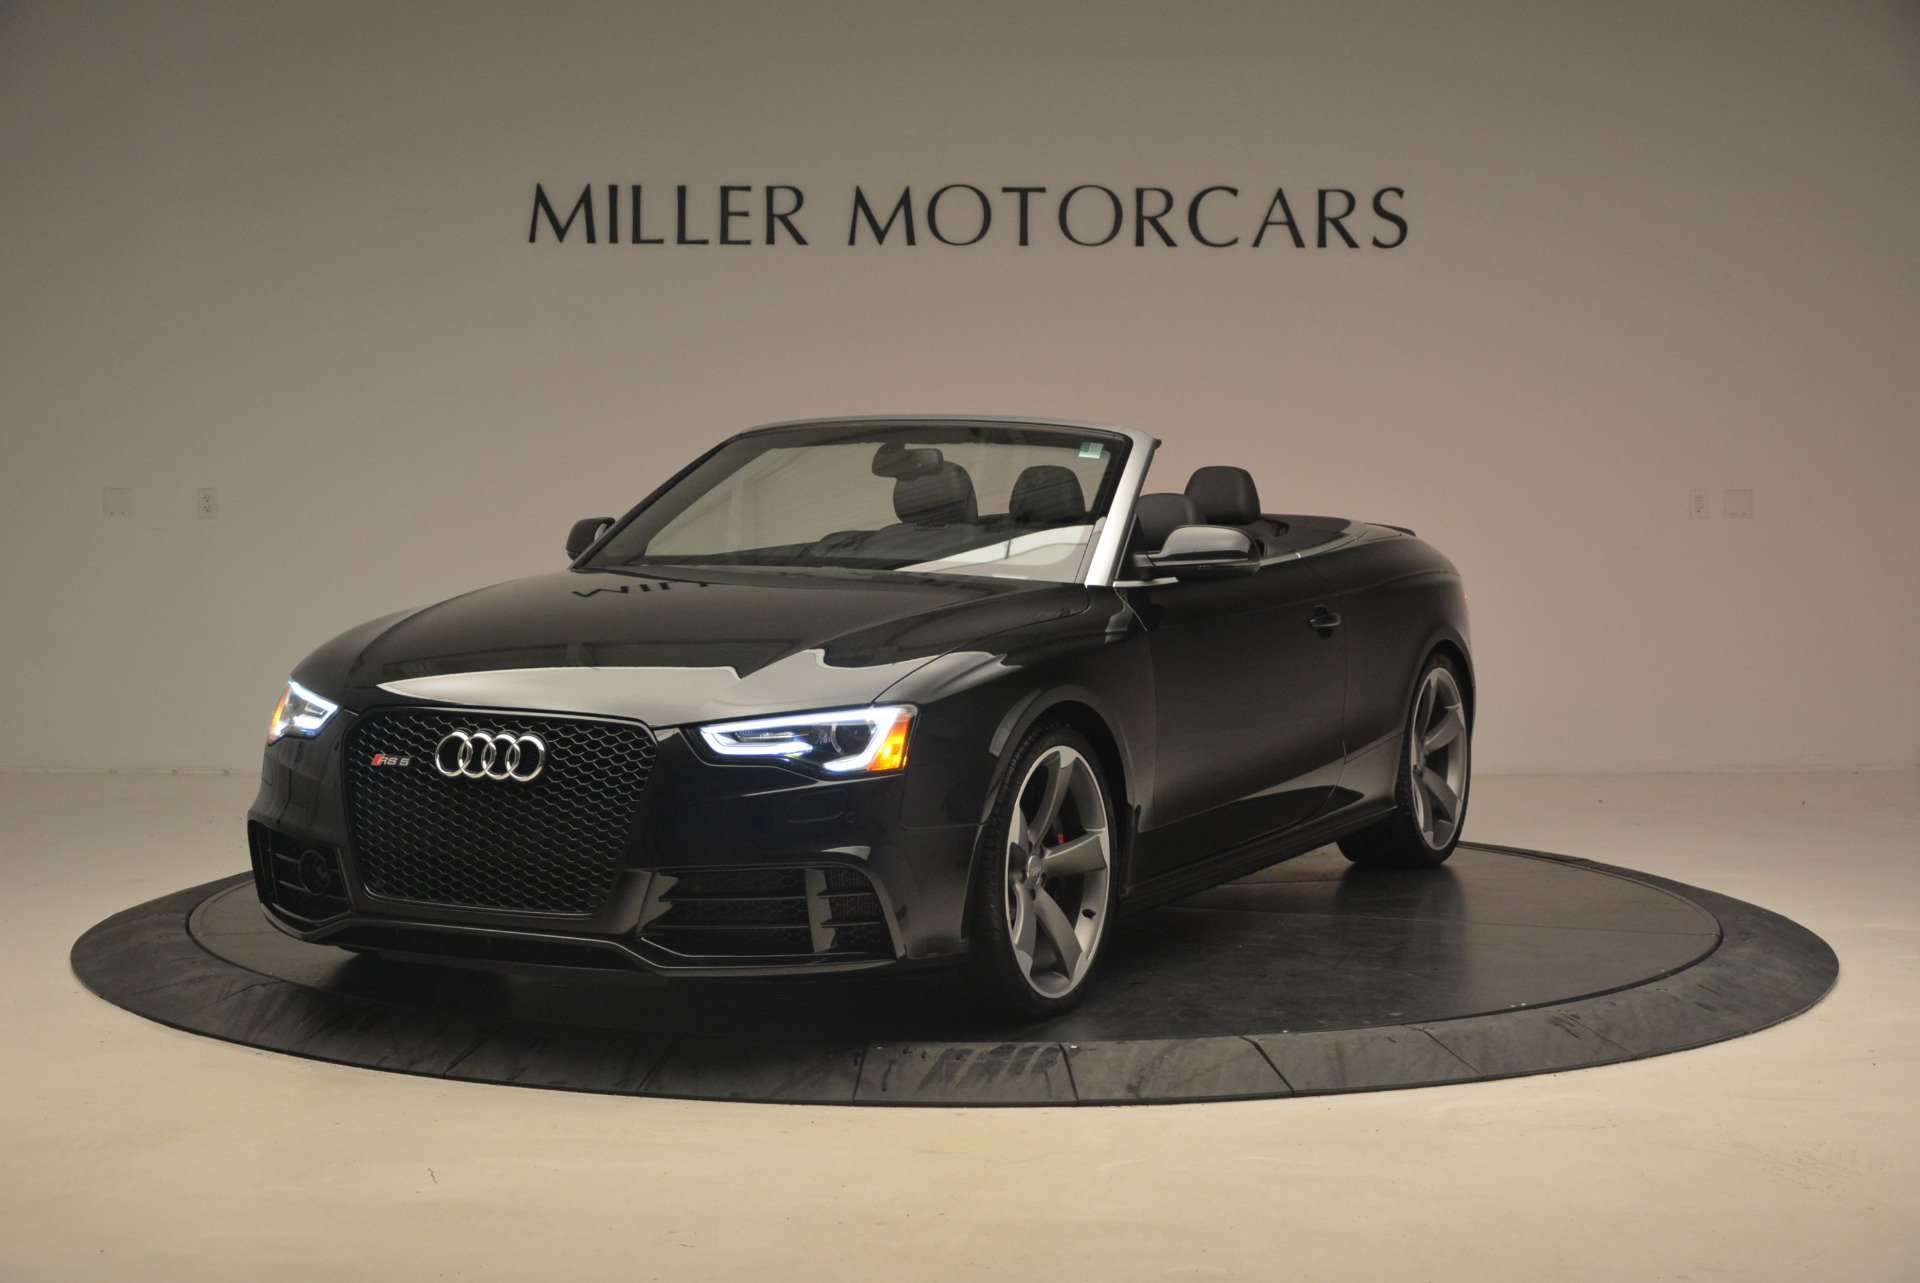 Used 2014 Audi RS 5 quattro for sale Sold at Alfa Romeo of Greenwich in Greenwich CT 06830 1